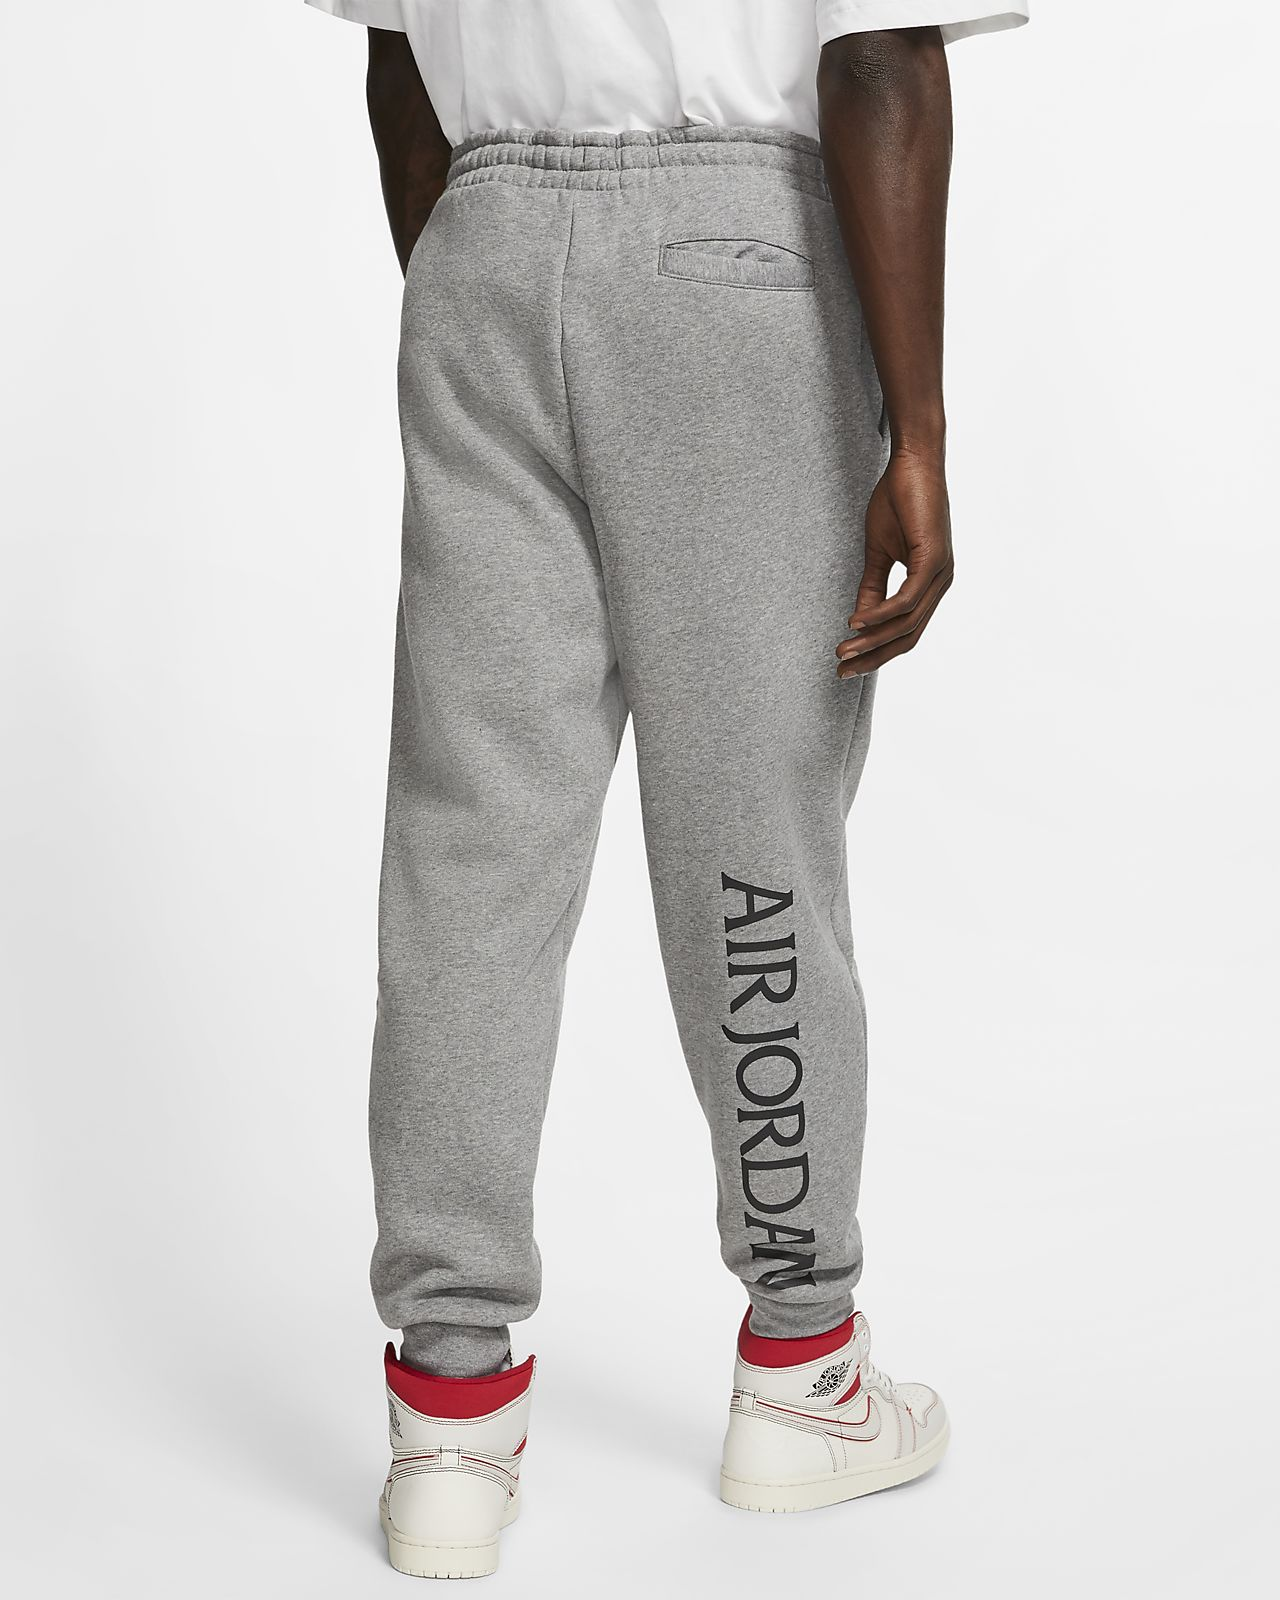 1a8895159c7 Jordan Jumpman Classics Men's Fleece Pants. Nike.com